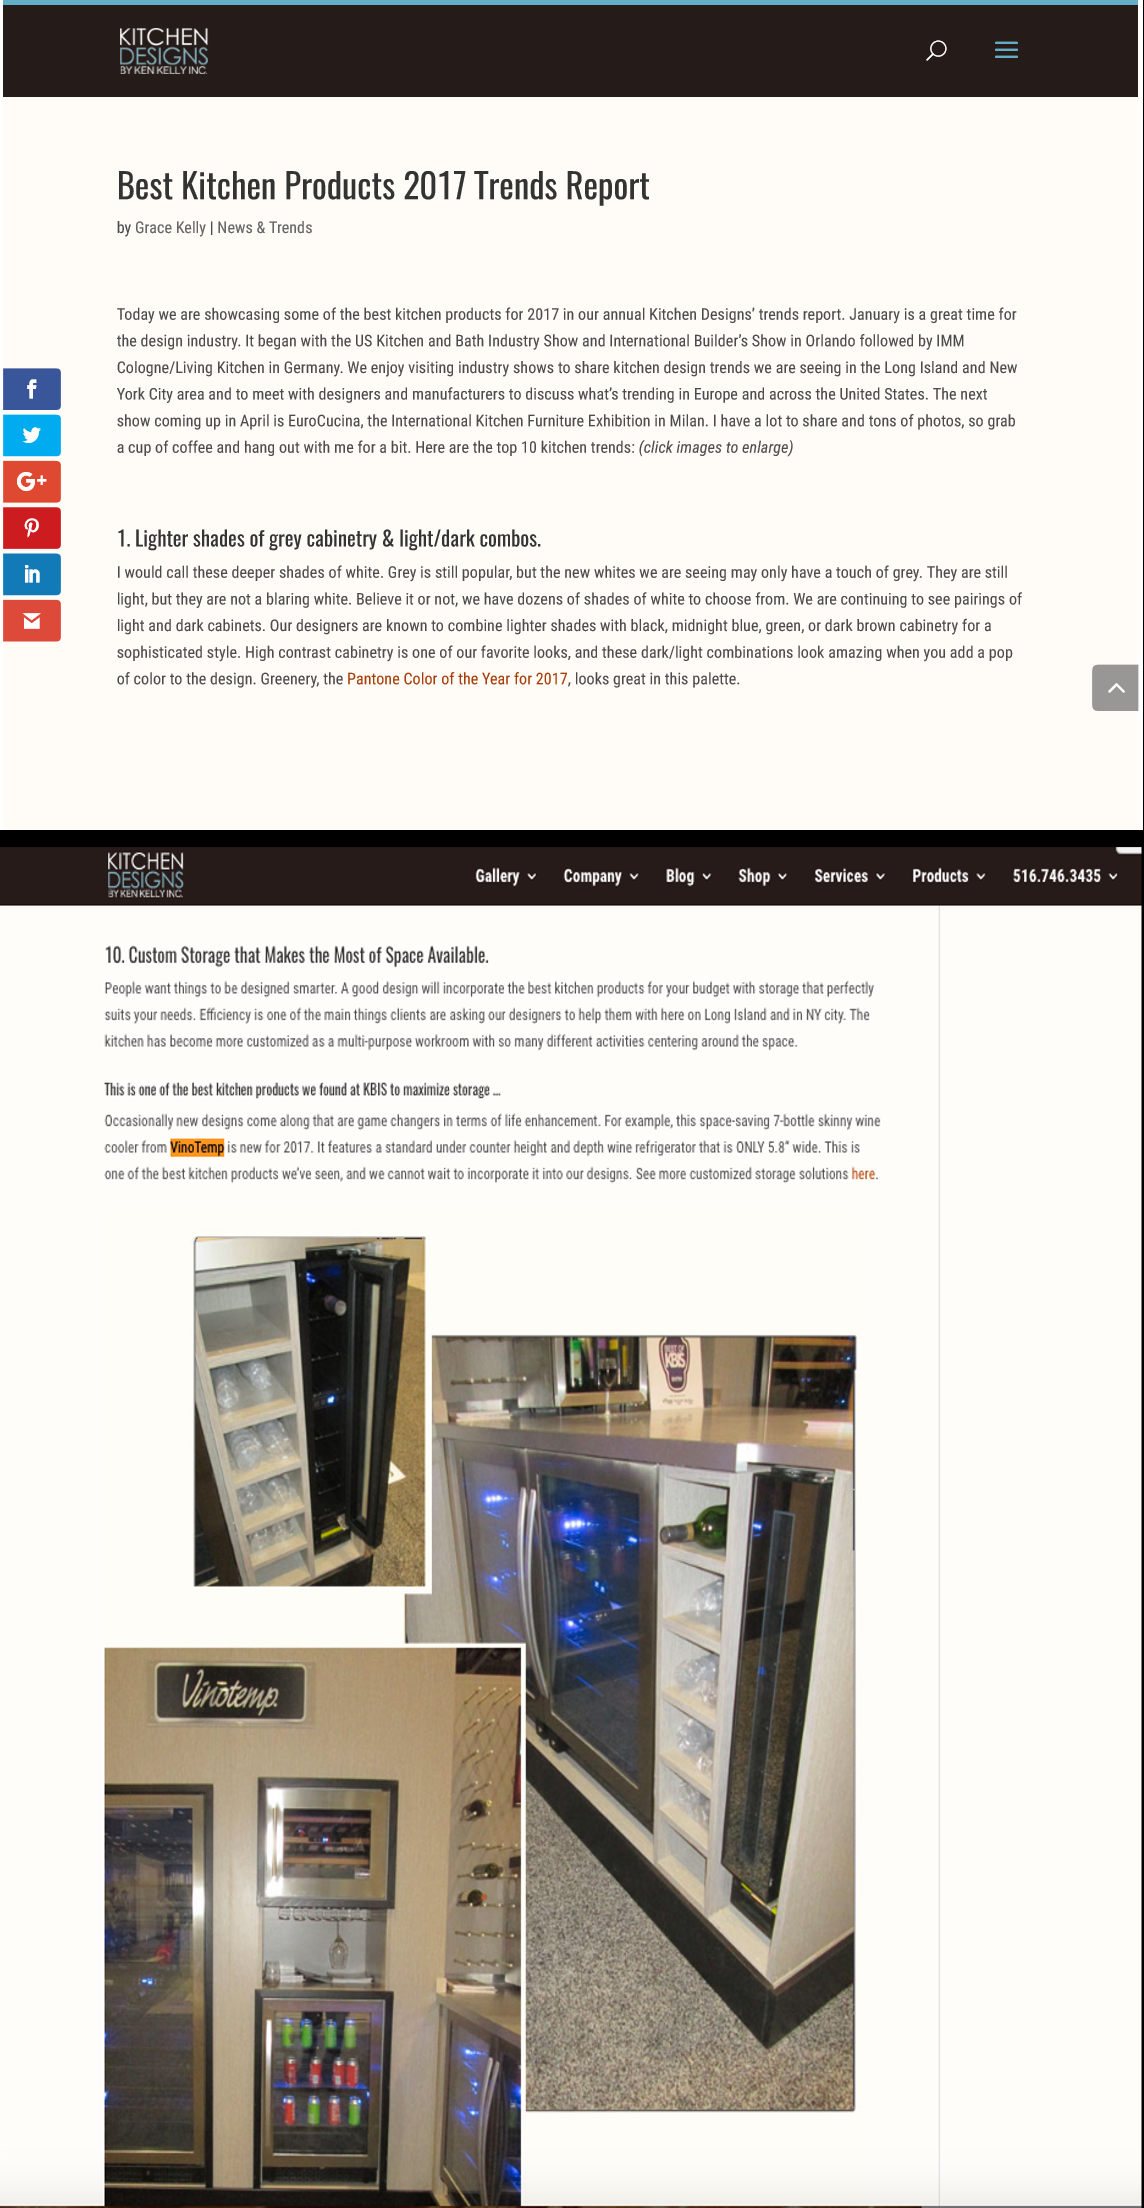 Vinotemp 7-Bottle Skinny Wine Cooler featured in the Best Kitchen Products 2017 Trend Report